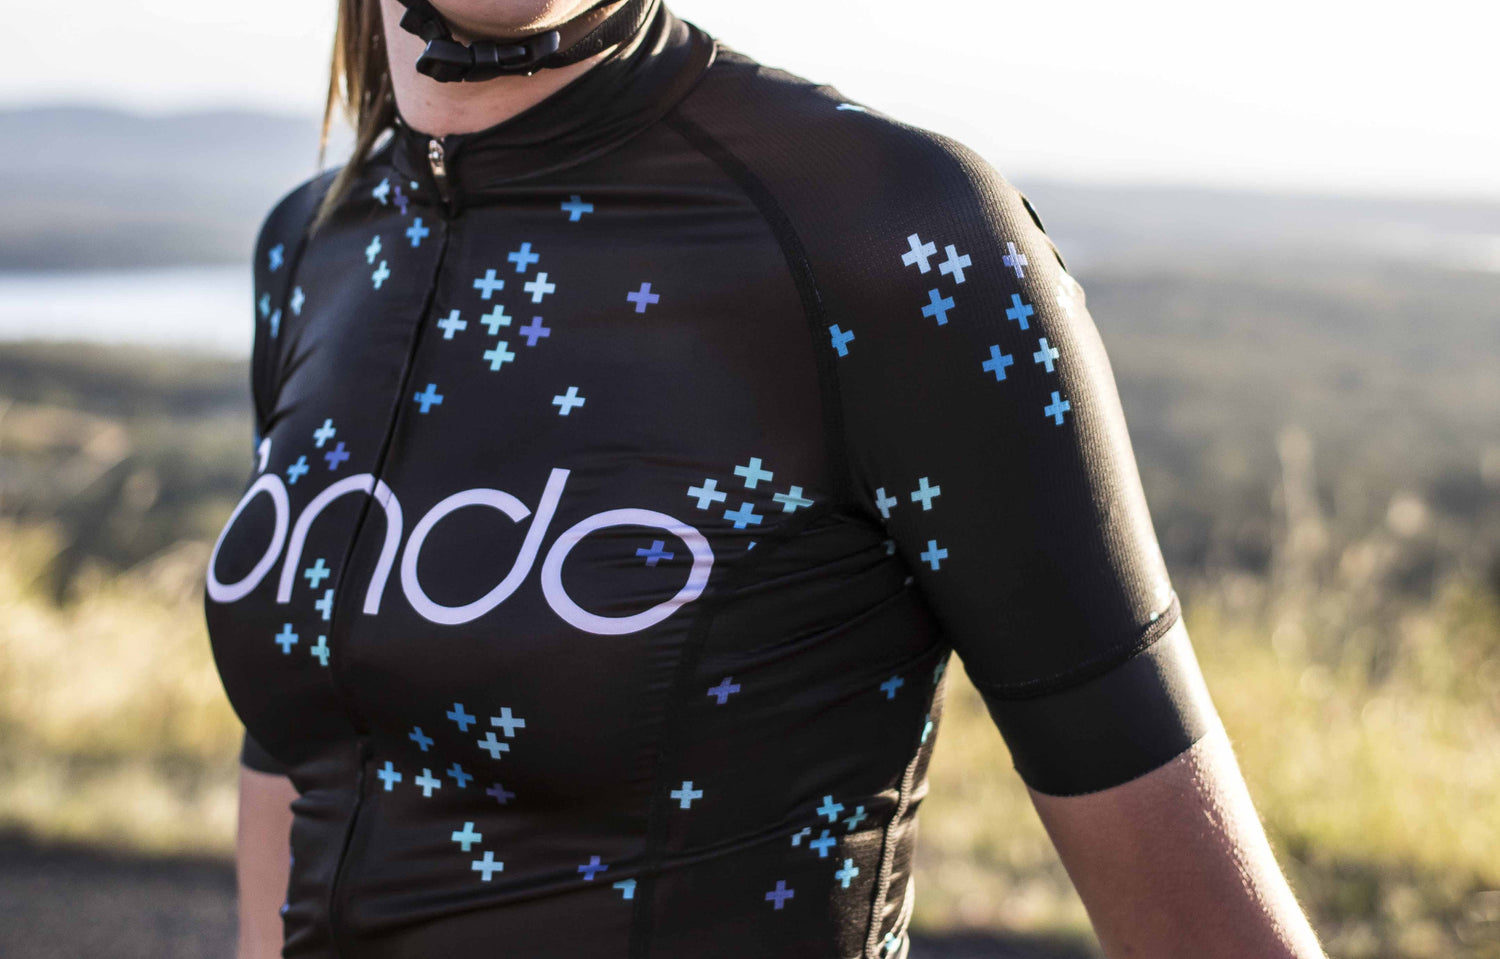 Cycling Kit - Astro